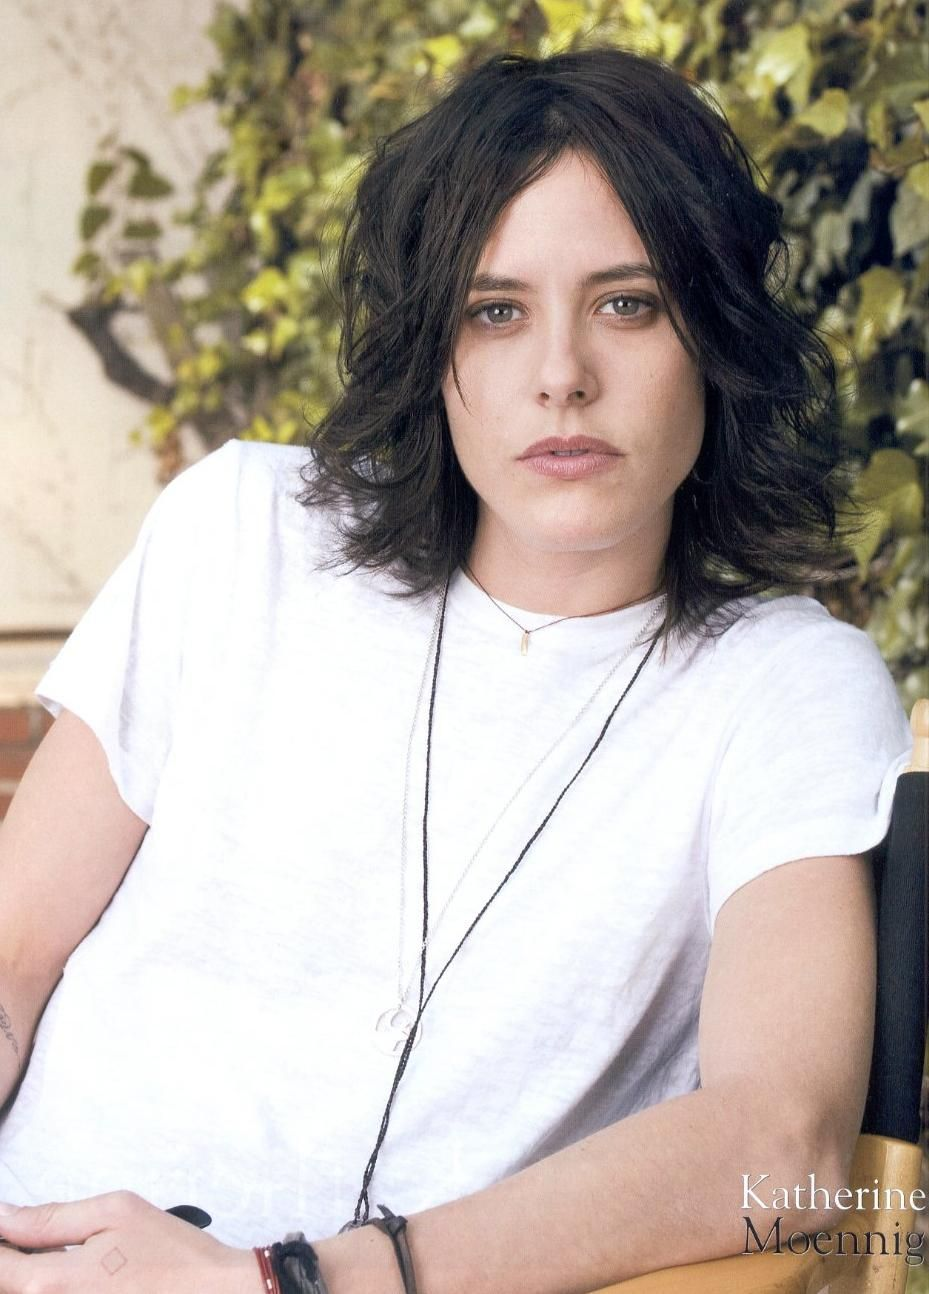 katherine moennig musickatherine moennig личная жизнь, katherine moennig vk, katherine moennig wiki, katherine moennig height, katherine moennig gif, katherine moennig ellen, katherine moennig music, katherine moennig birthday, katherine moennig height and weight, katherine moennig ruby rose, katherine moennig films, katherine moennig tattoo, katherine moennig filmography, katherine moennig instagram, katherine moennig interview, katherine moennig hairstyle, katherine moennig wallpaper, katherine moennig twitter, katherine moennig tumblr, katherine moennig csi miami